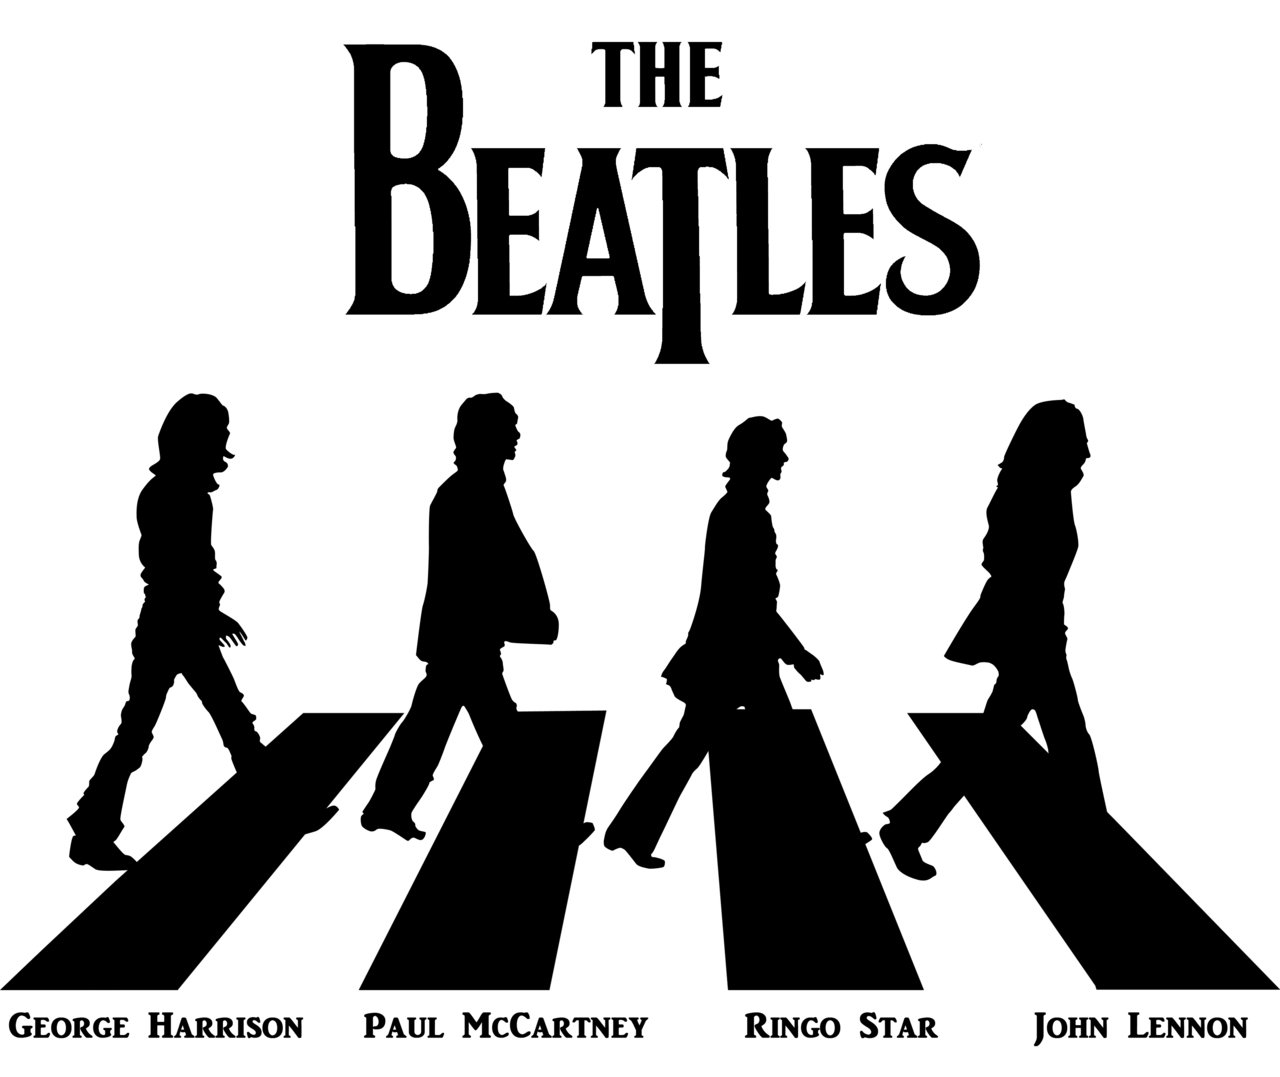 Beatles logo beatles symbol meaning history and evolution for Beatles tattoo abbey road